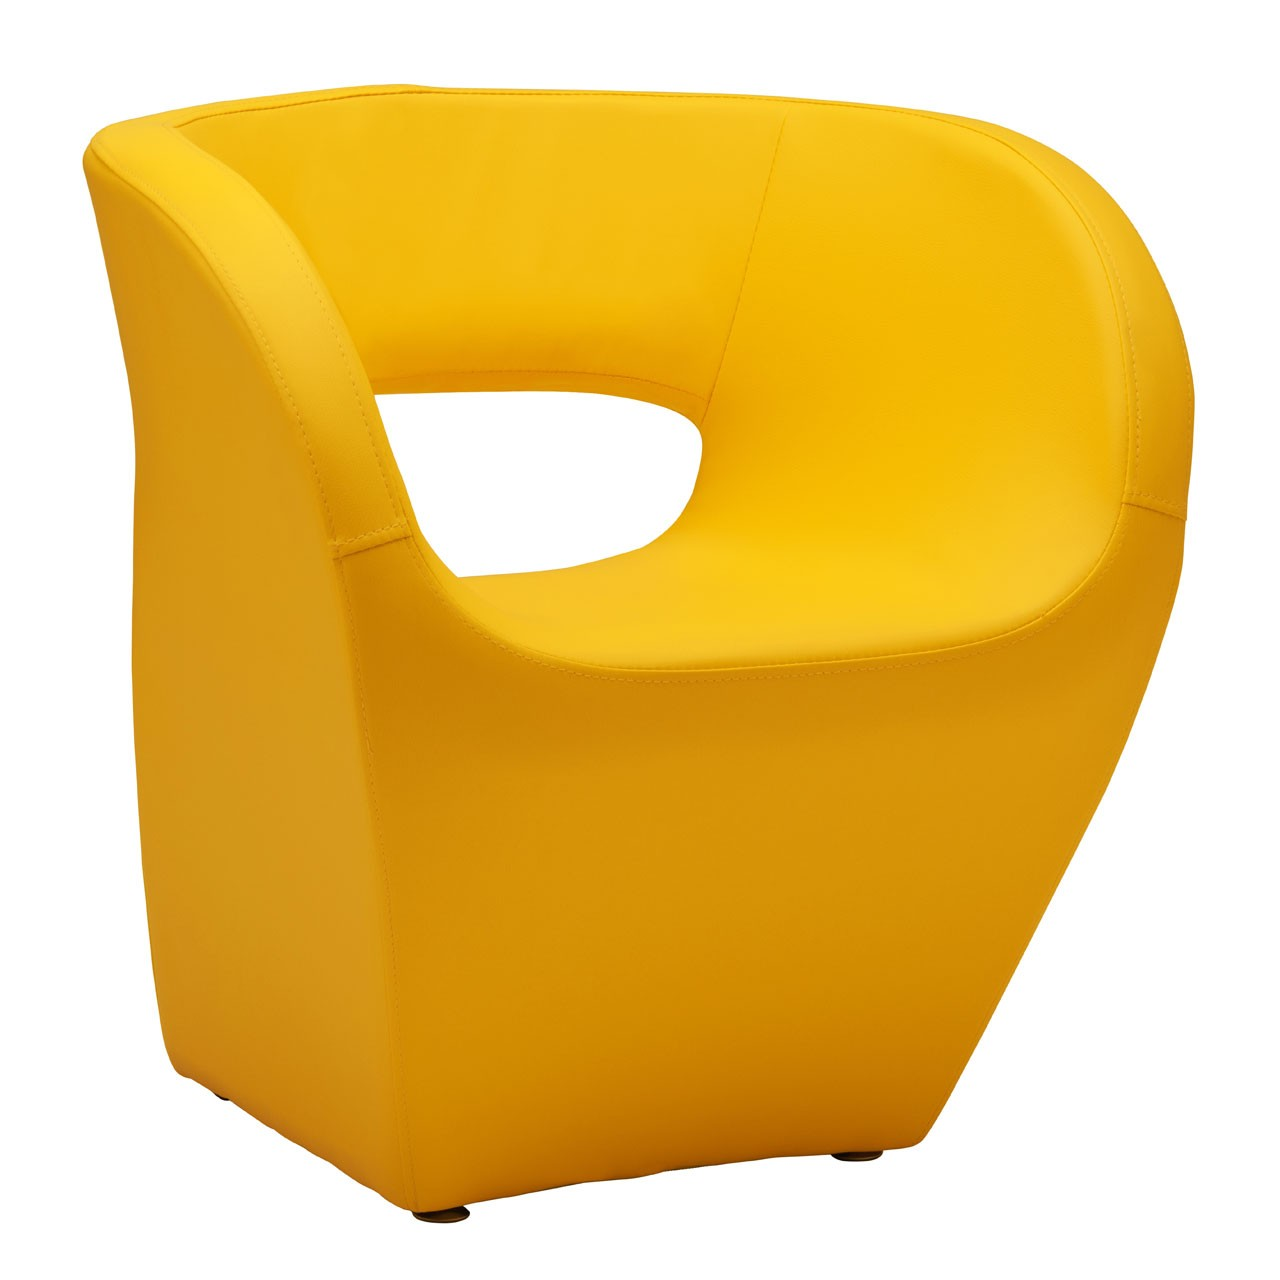 Aldo Chair, Yellow Leather Effect